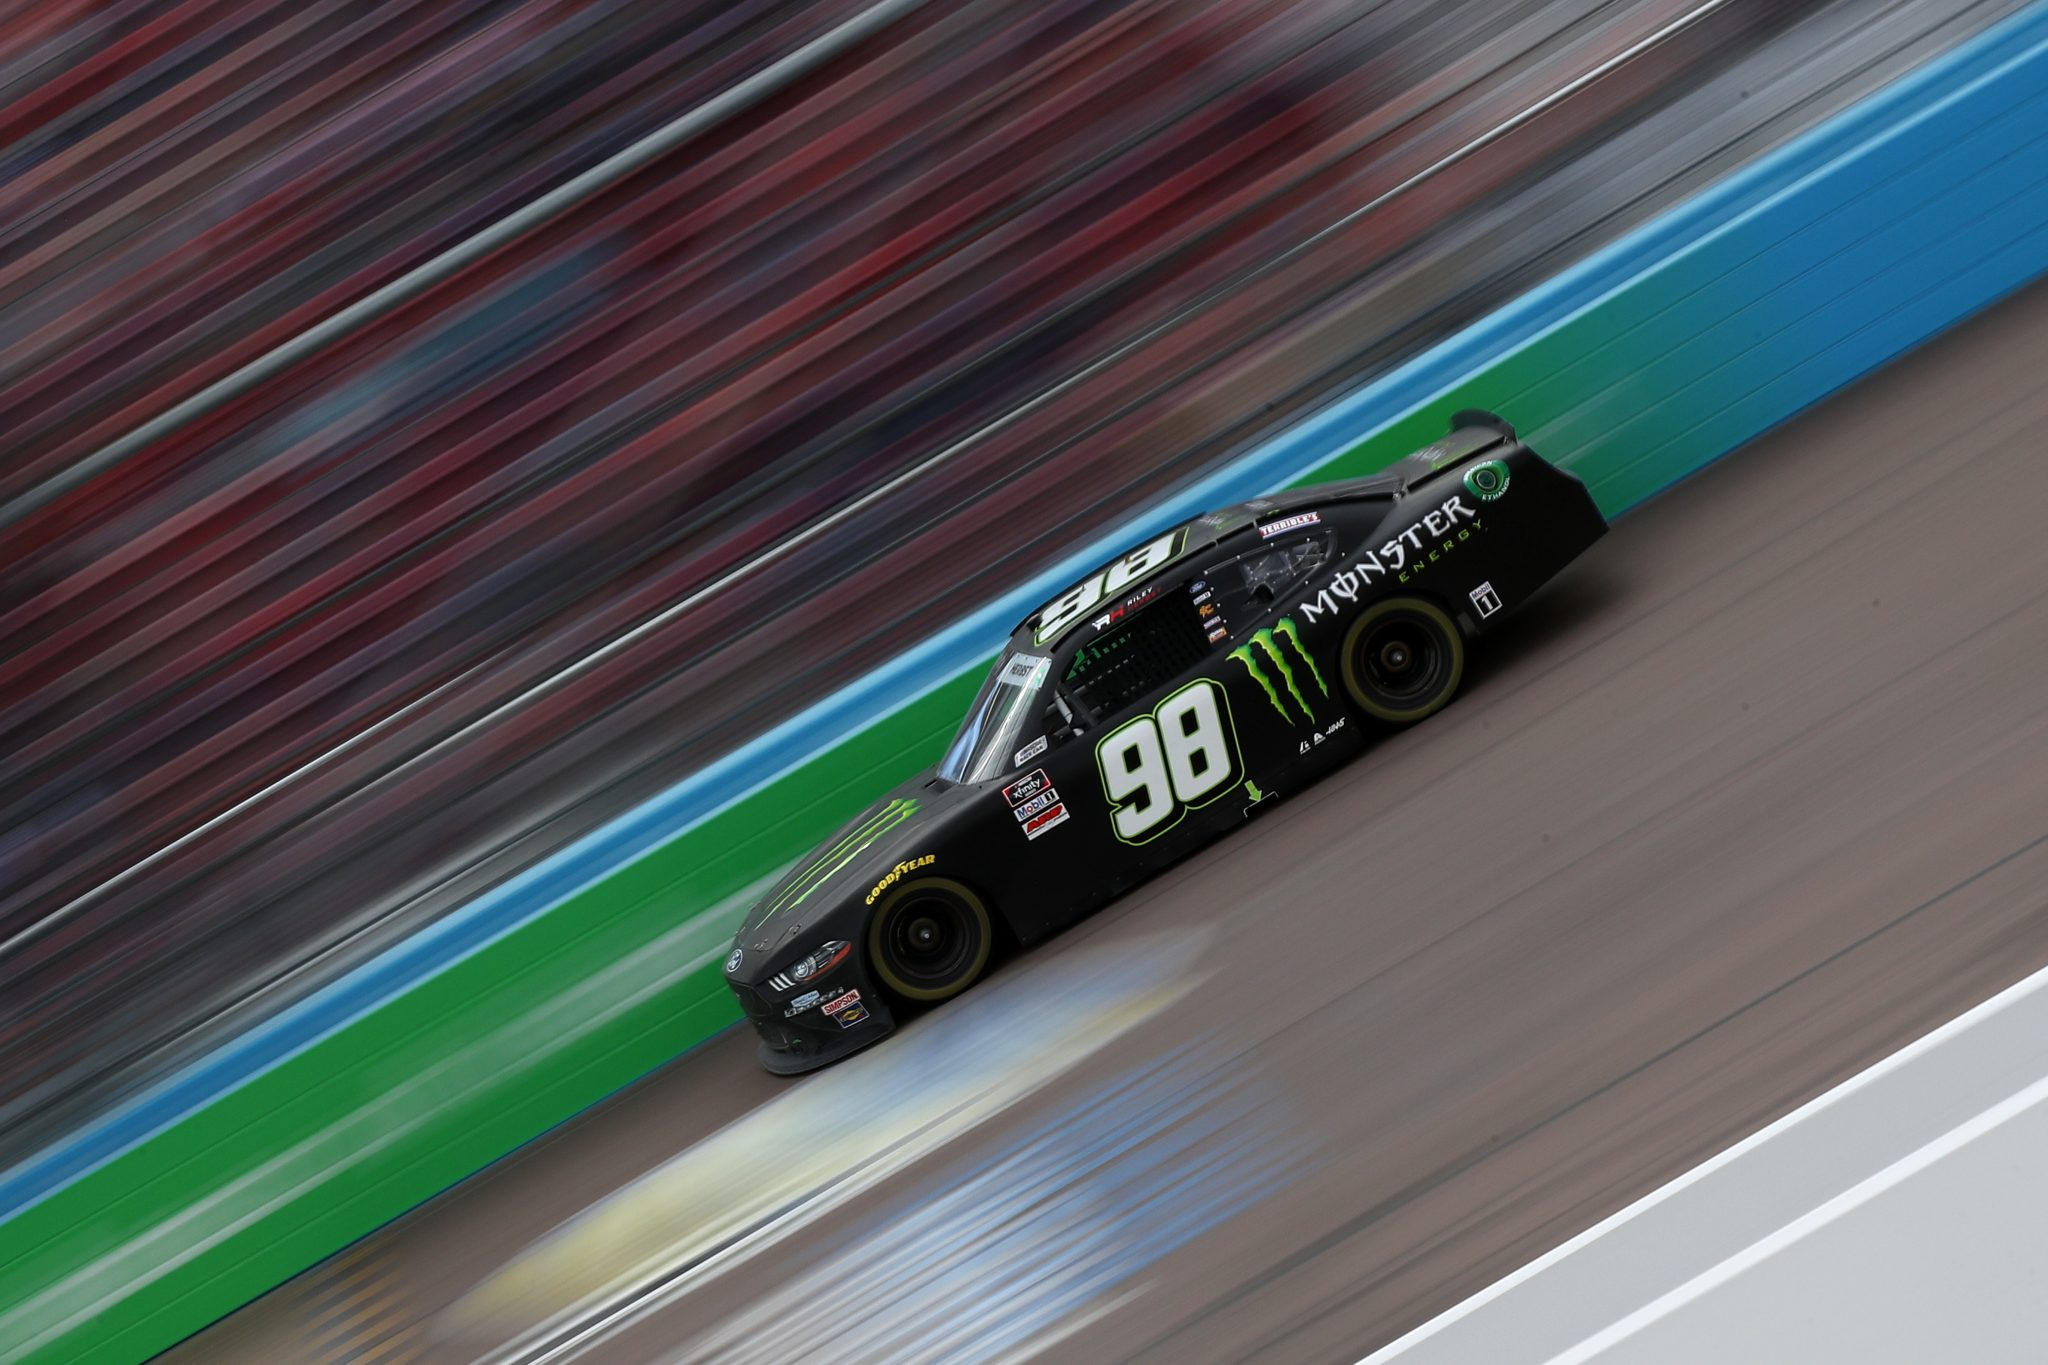 AVONDALE, ARIZONA - MARCH 13: Riley Herbst, driver of the #98 Monster Energy Ford, drives during the NASCAR Xfinity Series Call 811 Before You Dig 200 presented by Arizona 811 at Phoenix Raceway on March 13, 2021 in Avondale, Arizona. (Photo by Sean Gardner/Getty Images) | Getty Images